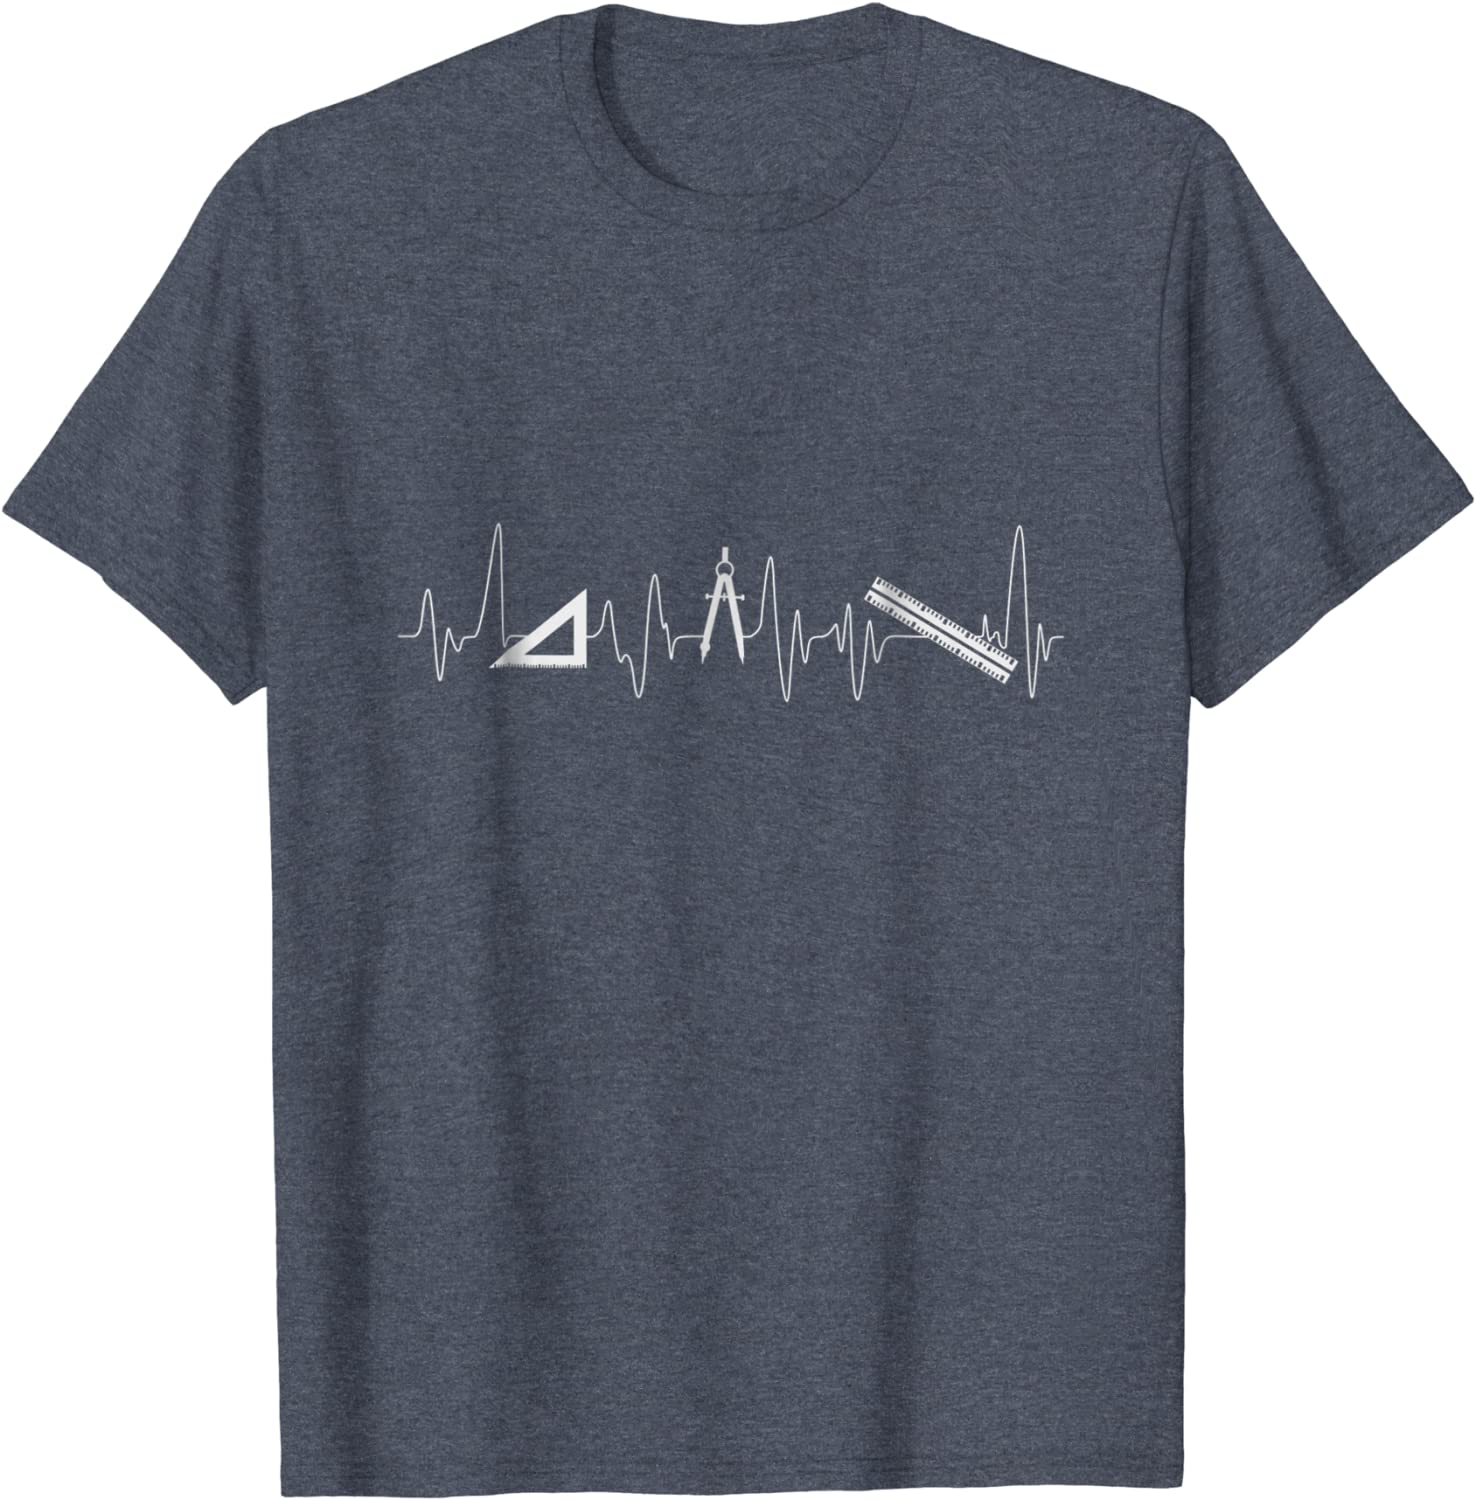 Architect T Shirt Architecture Tool Heartbeat Pulse-TH